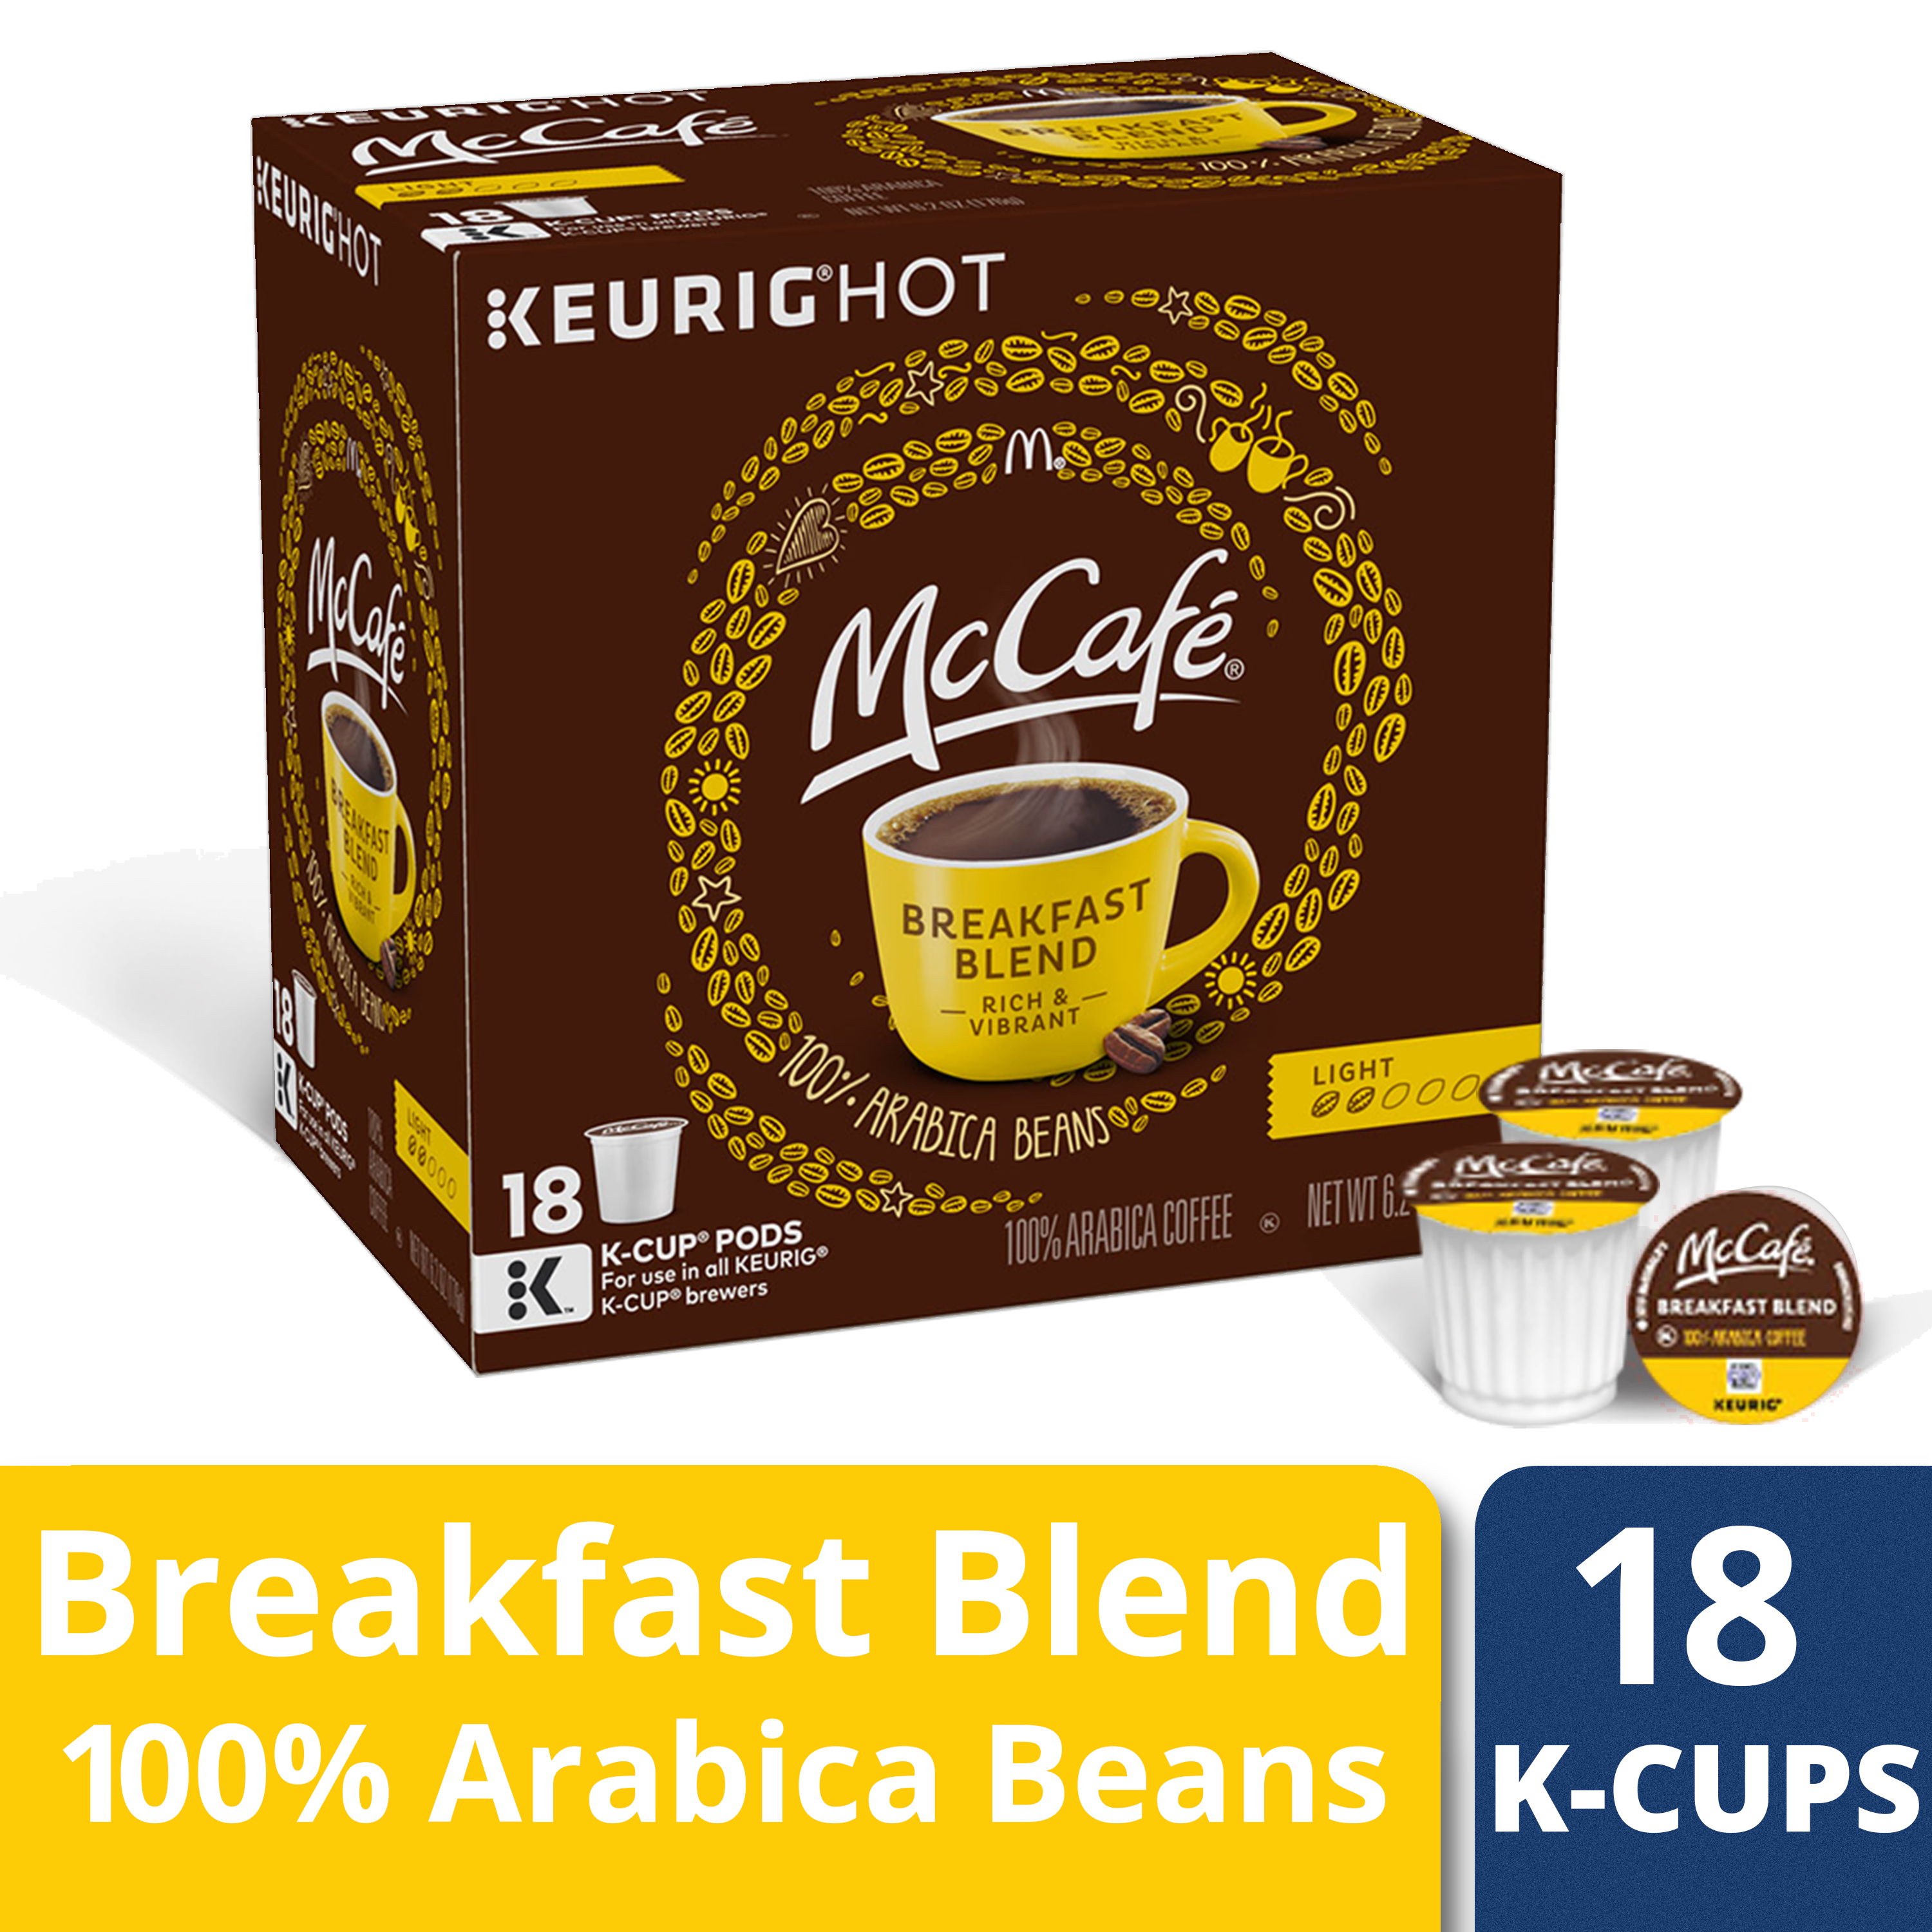 McCafe Breakfast Blend Coffee K-Cup Pods 18 ct Box